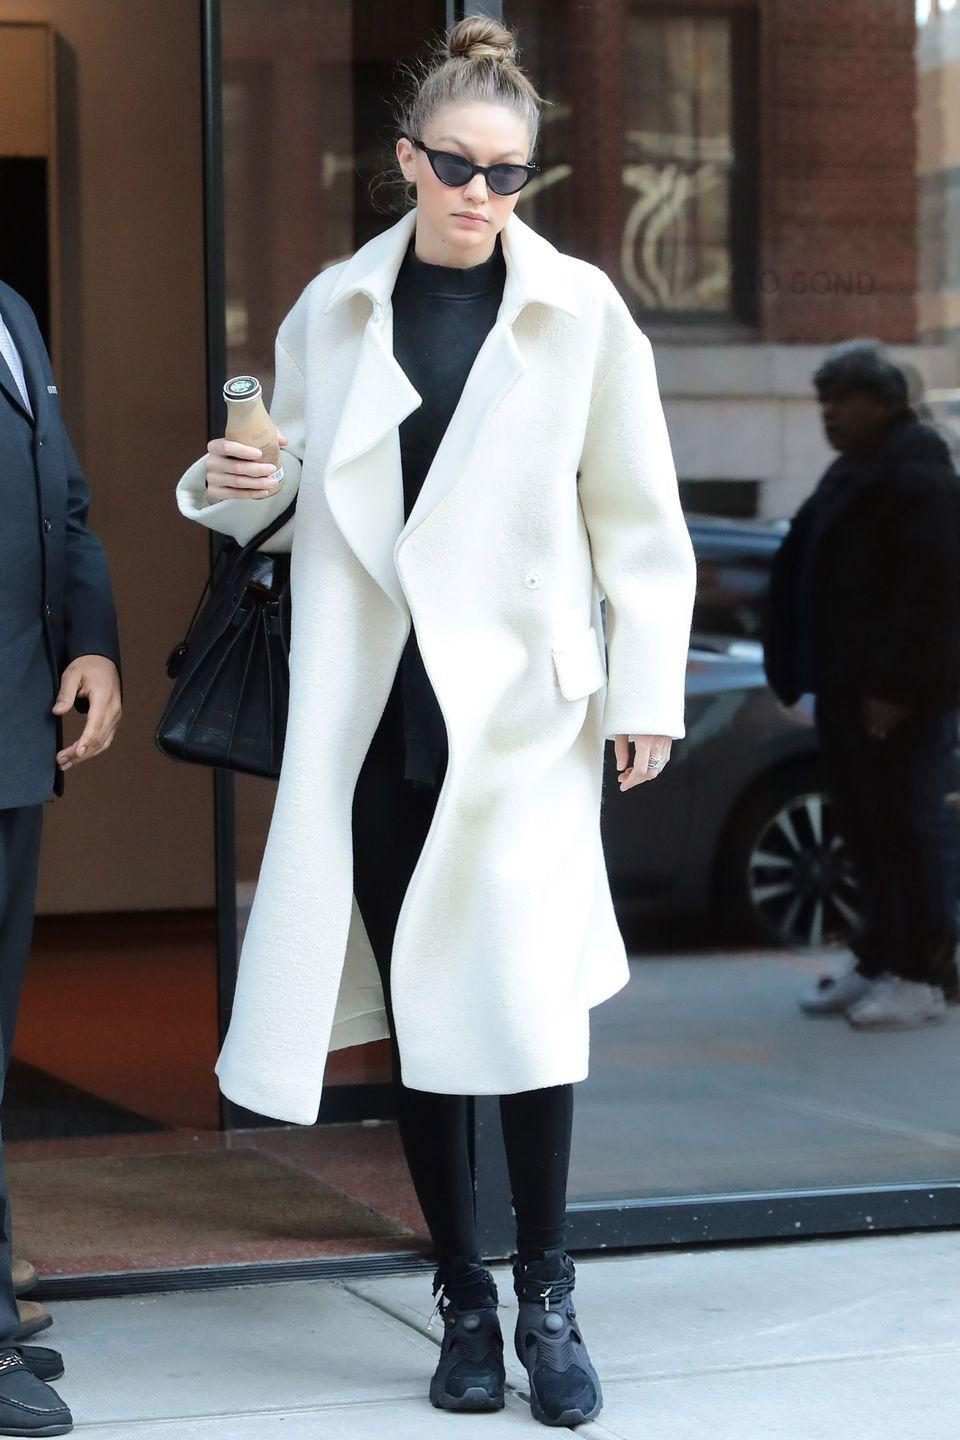 <p>In a white coat, black workout gear, black high-top sneakers, a black tote bag and black cat eye glasses while out in New York.</p>